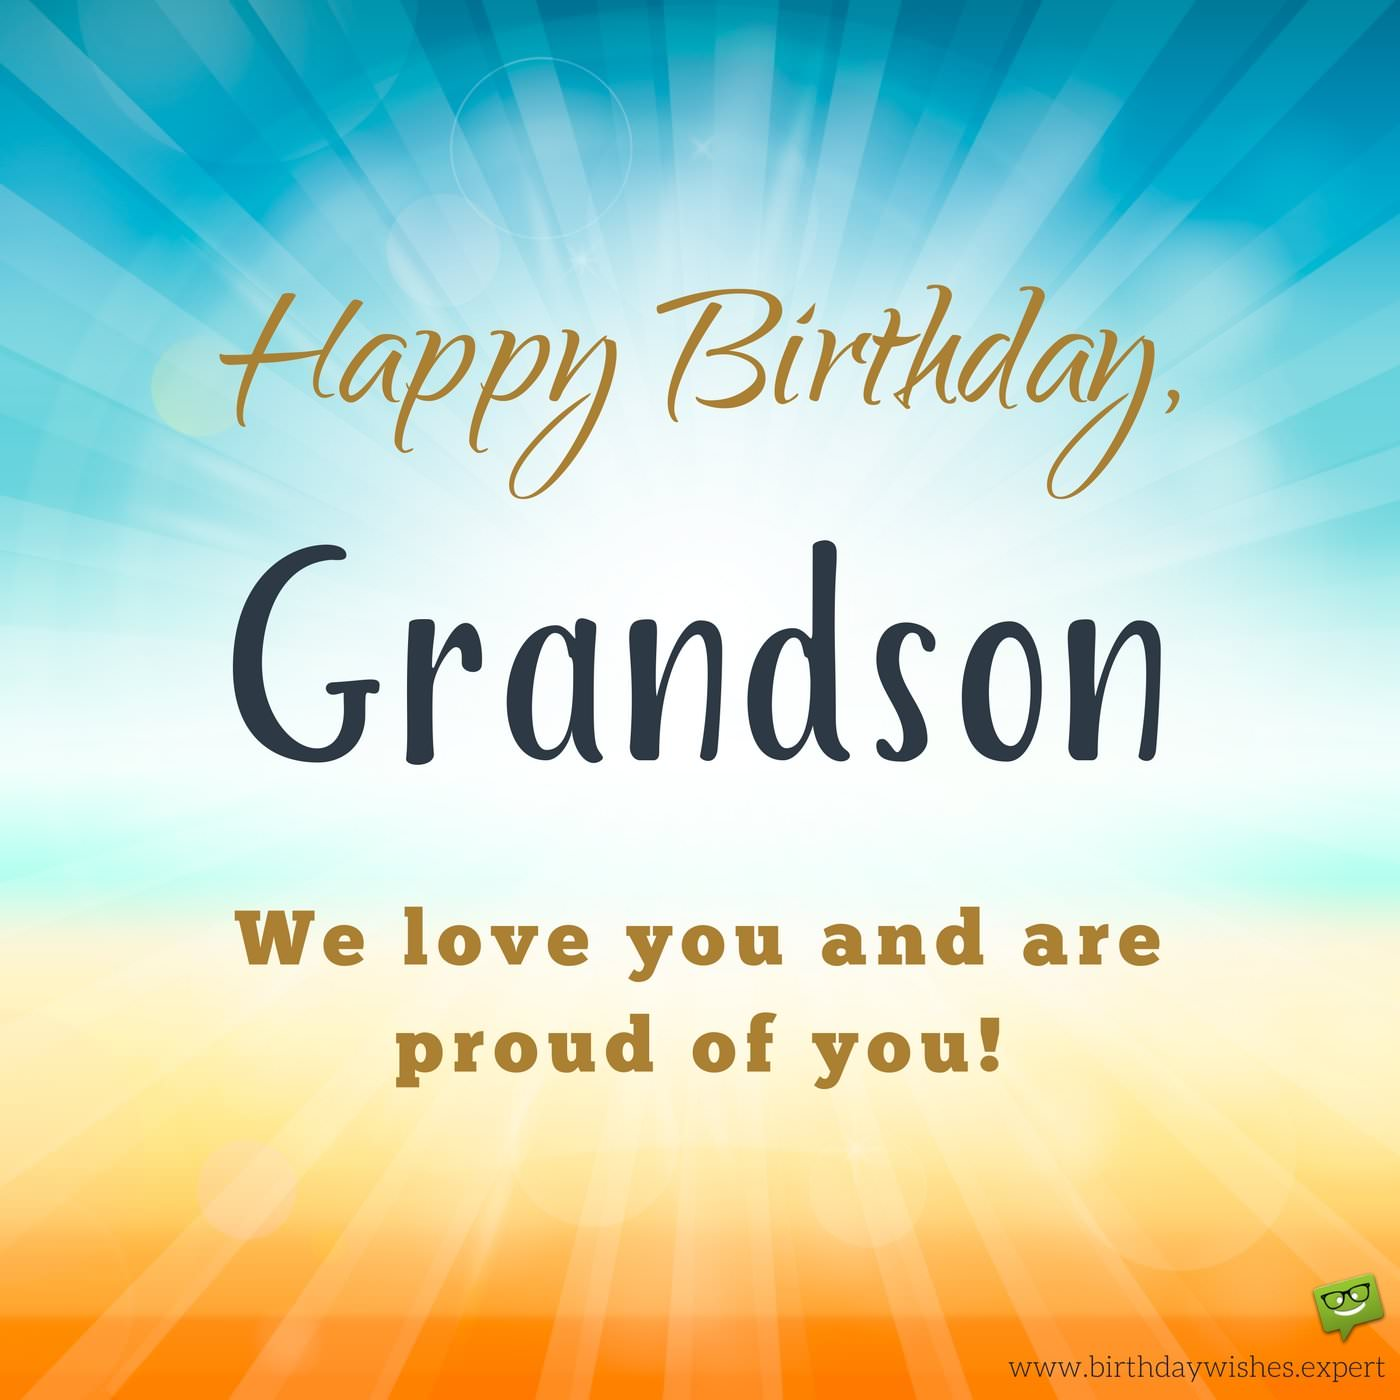 happy birthday to my grandson images ; Happy-Birthday-grandson